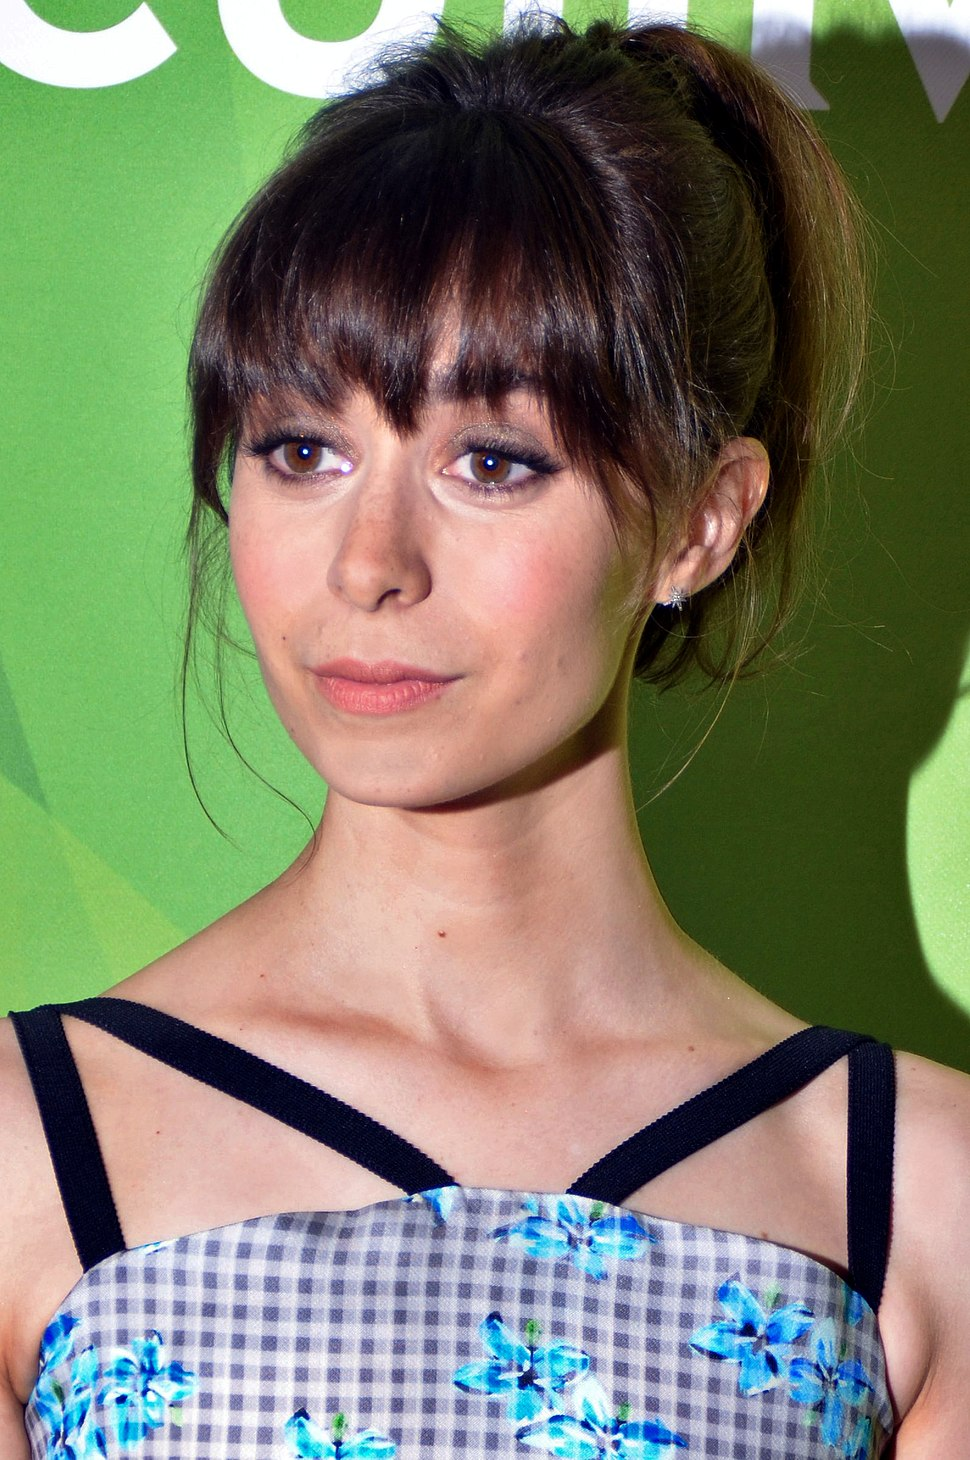 Cristin Milioti July 13, 2014 (cropped)